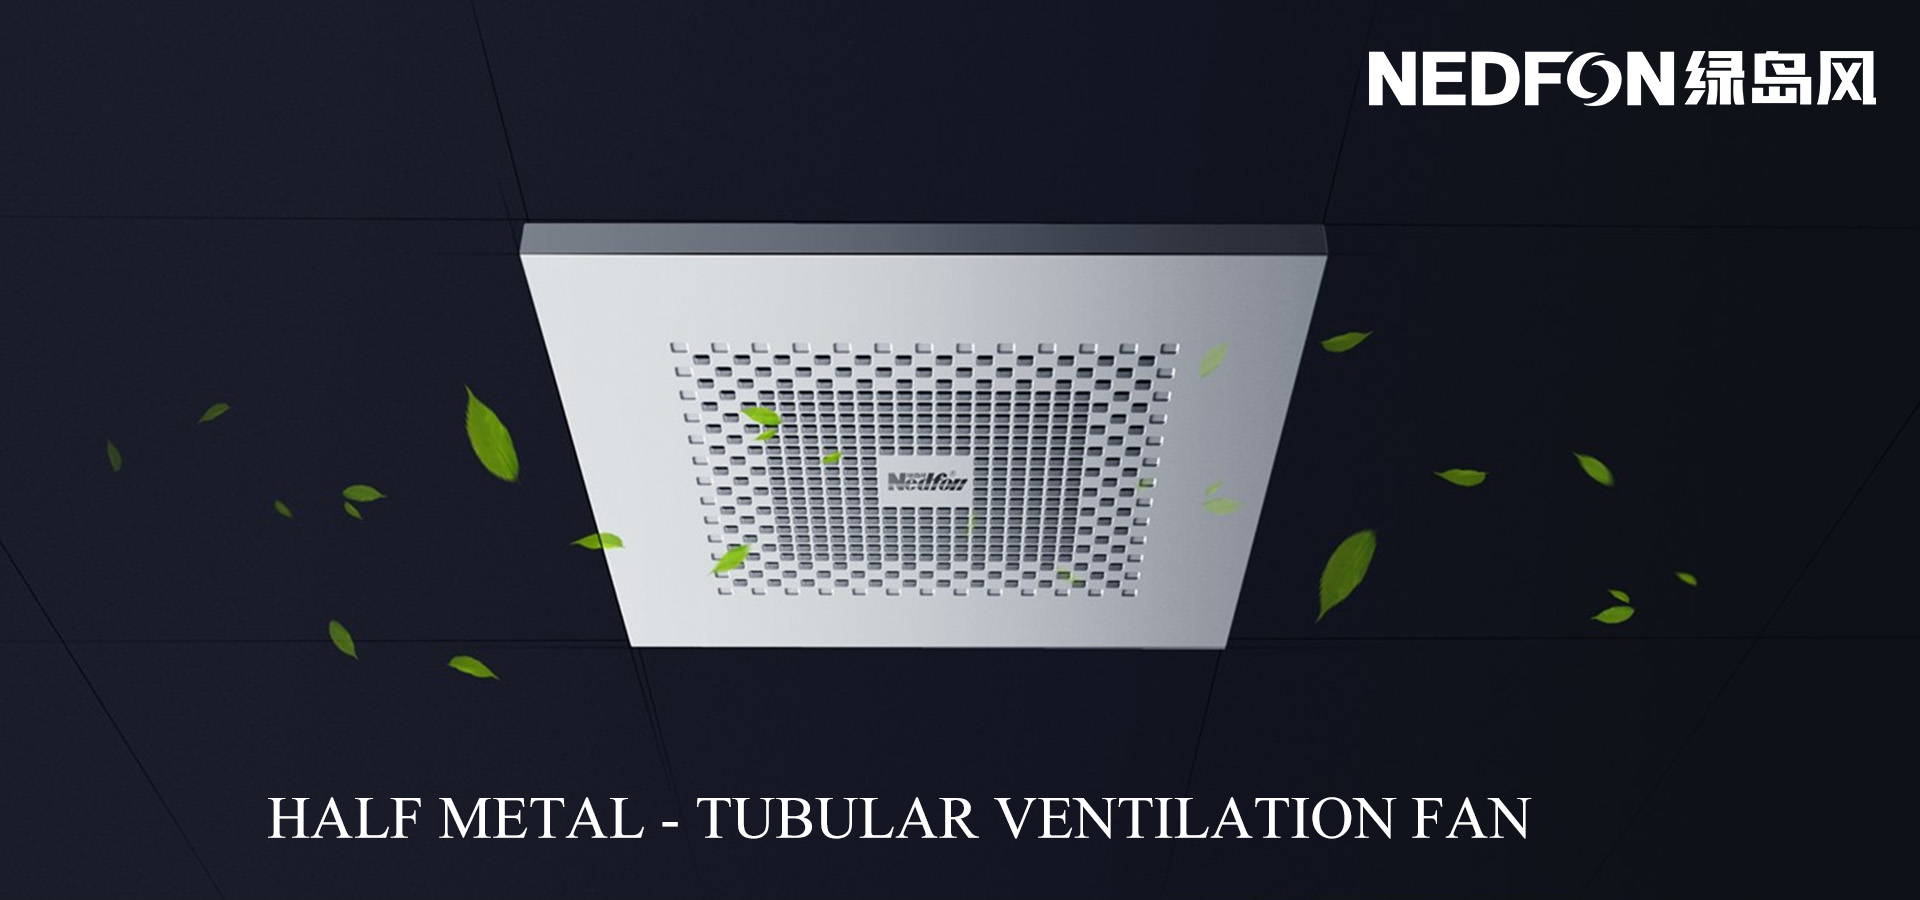 new-tubular-ventilation-fan.jpg